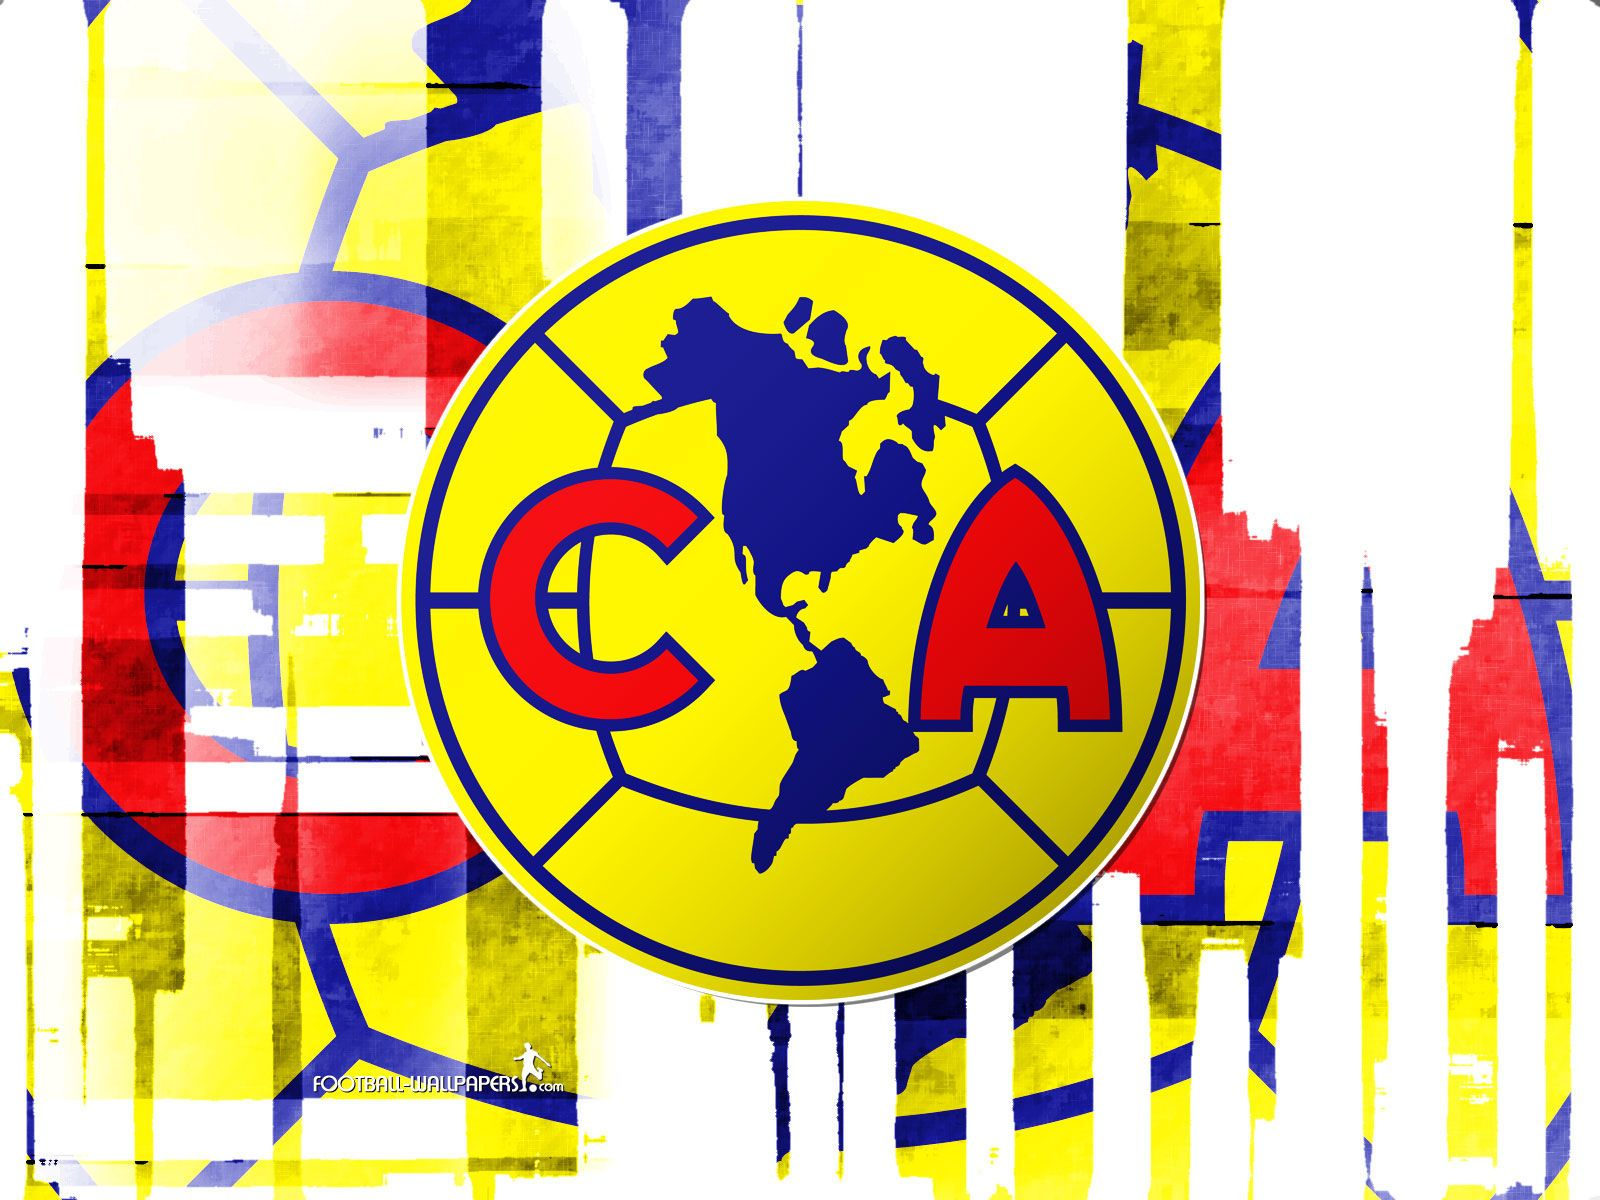 1600x1200 Club America Wallpaper Football Wallpapers: Players, Teams, Leagues ...